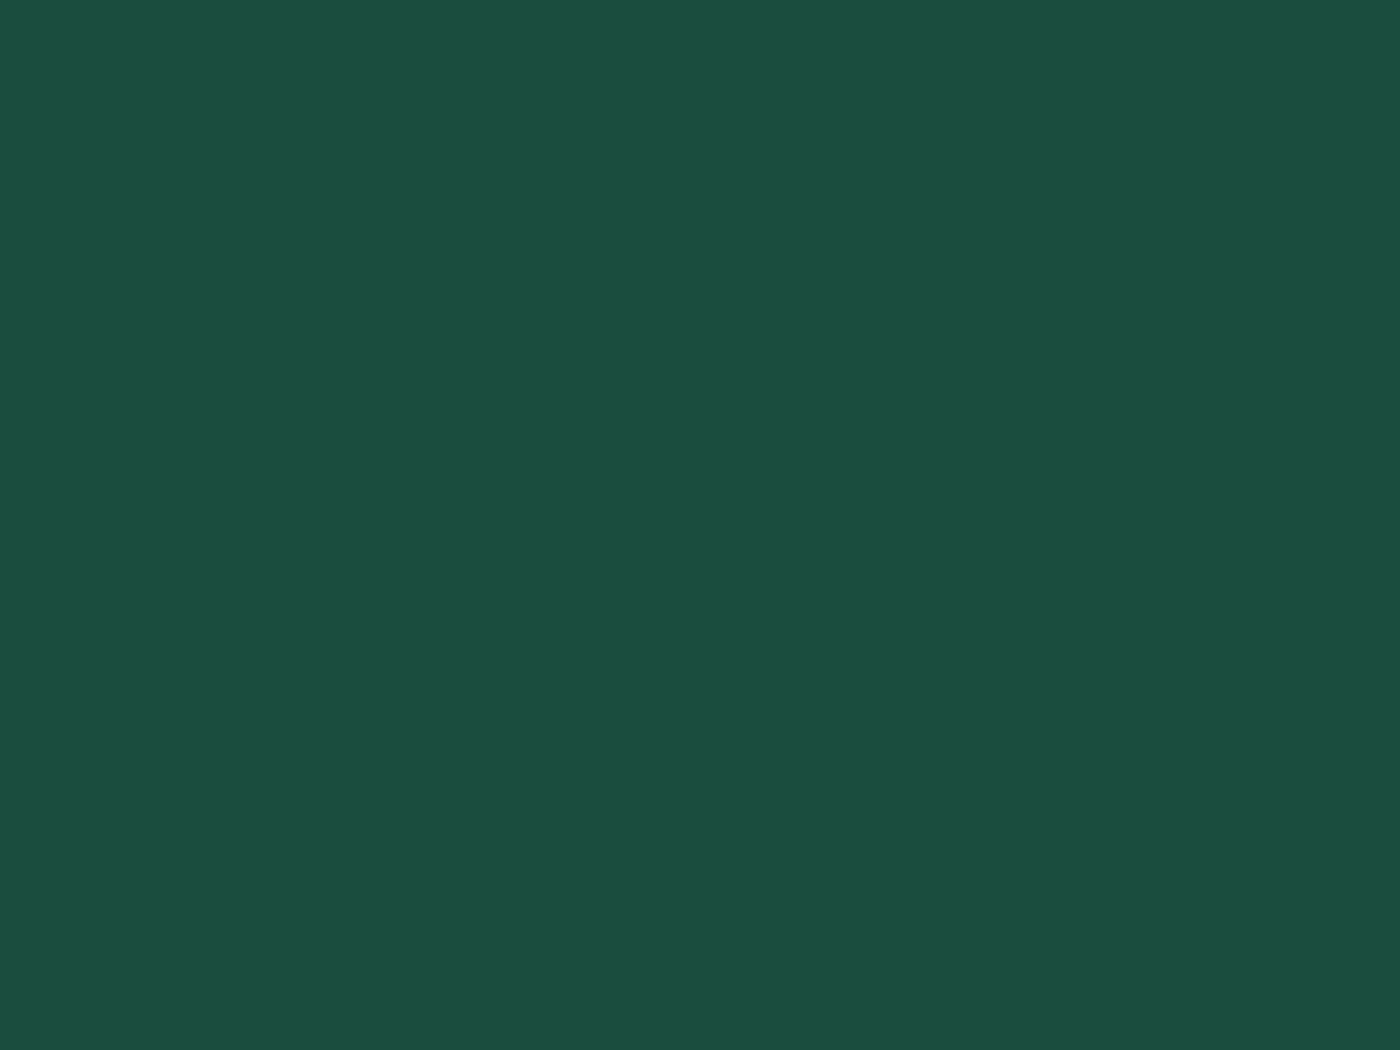 1400x1050 English Green Solid Color Background